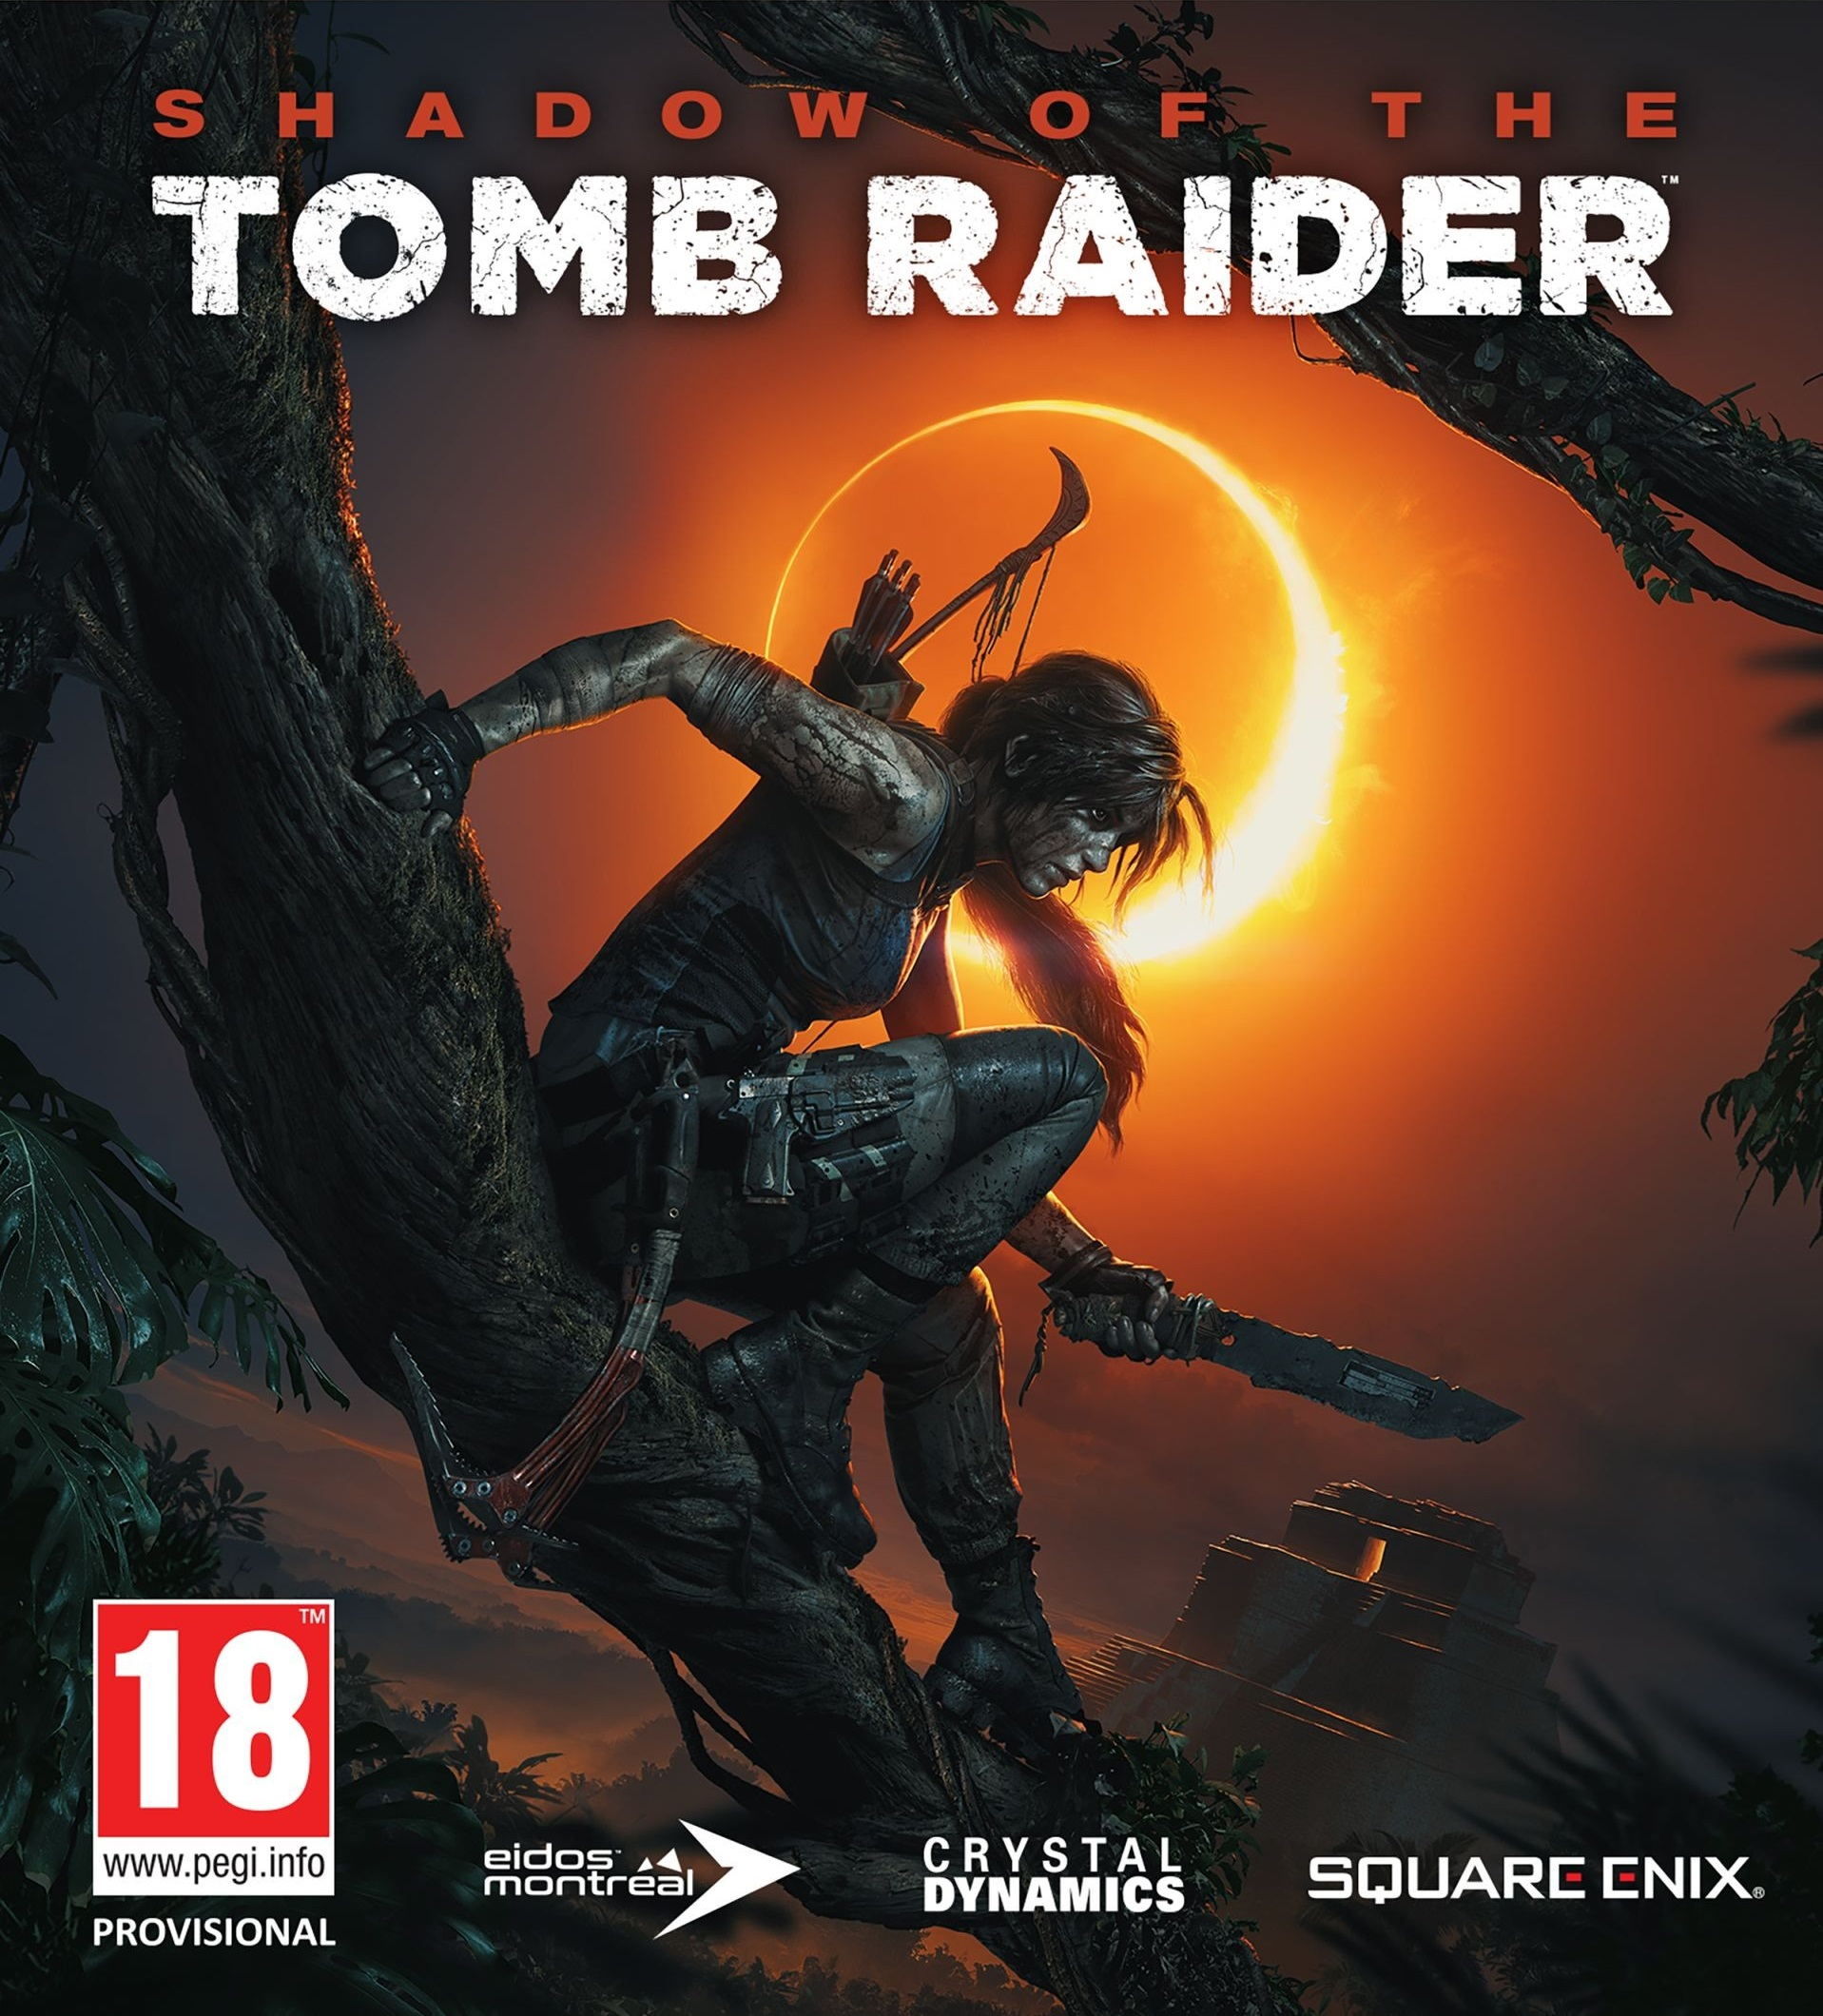 Shadow of the Tomb Raider Digital Deluxe Wholesale